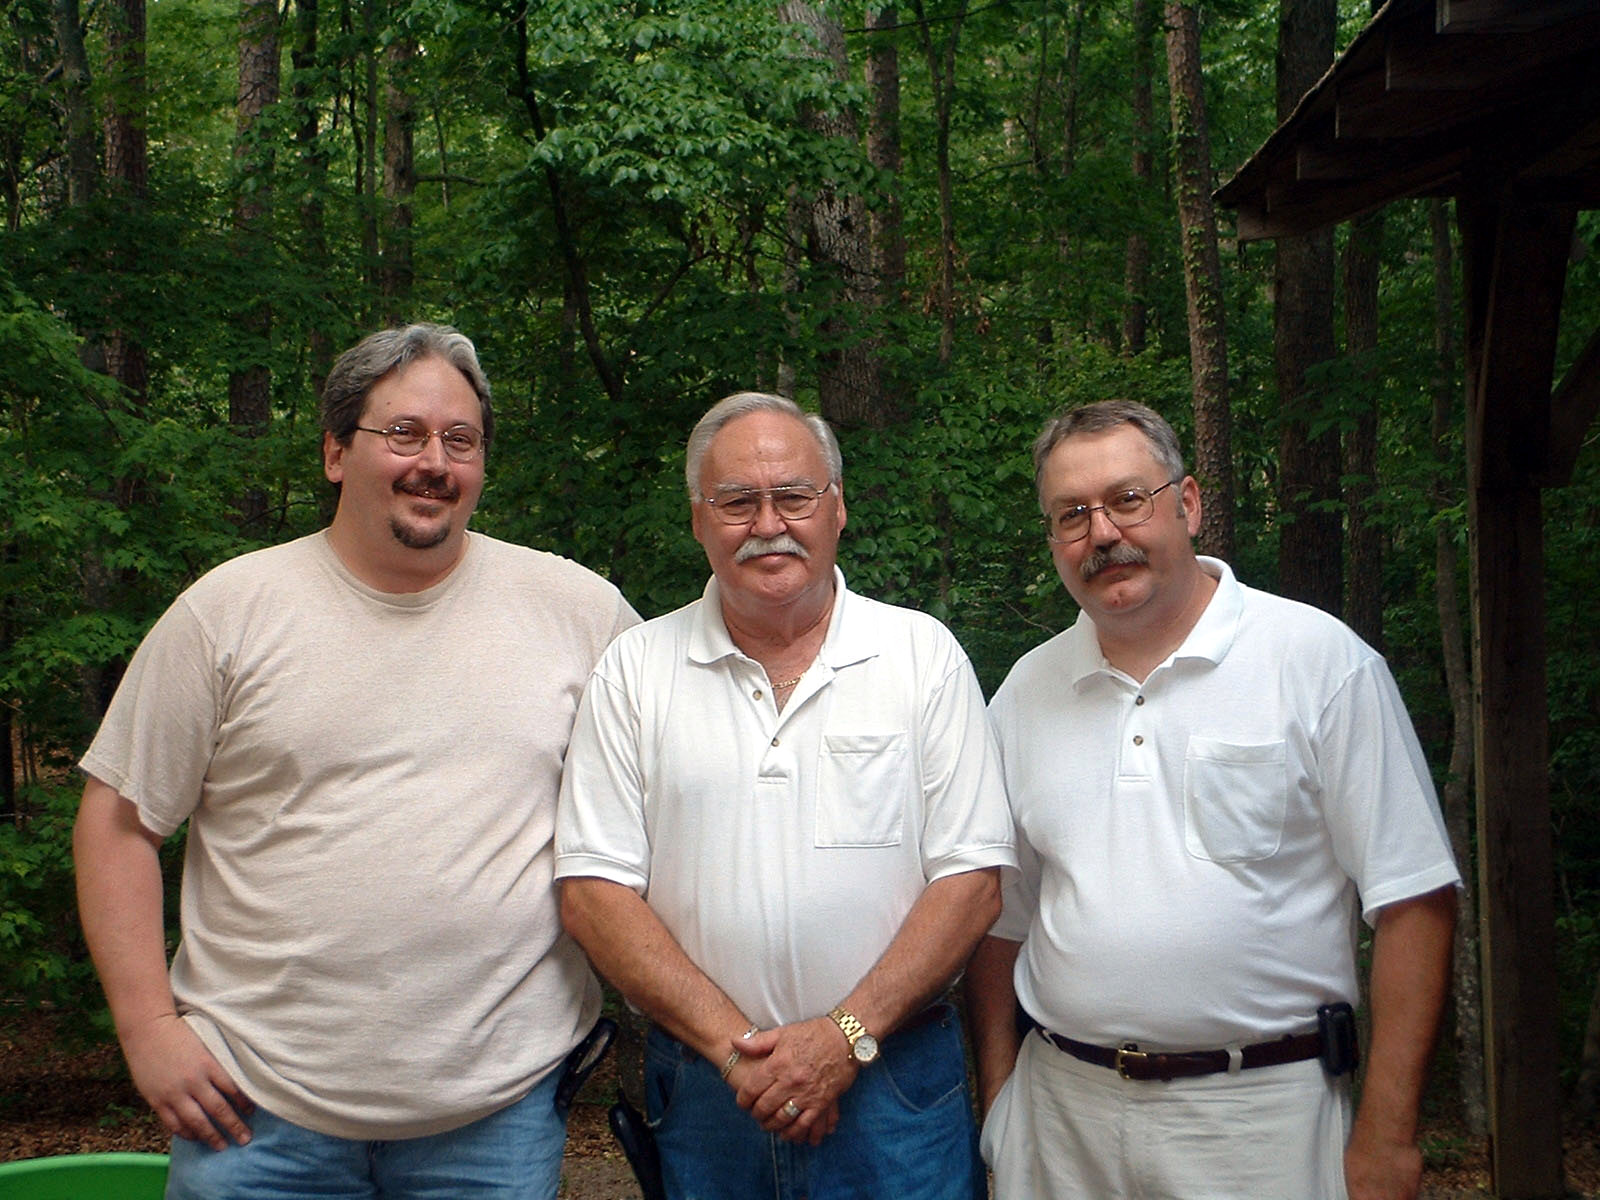 Kevin, Allen and Mike Lovelace